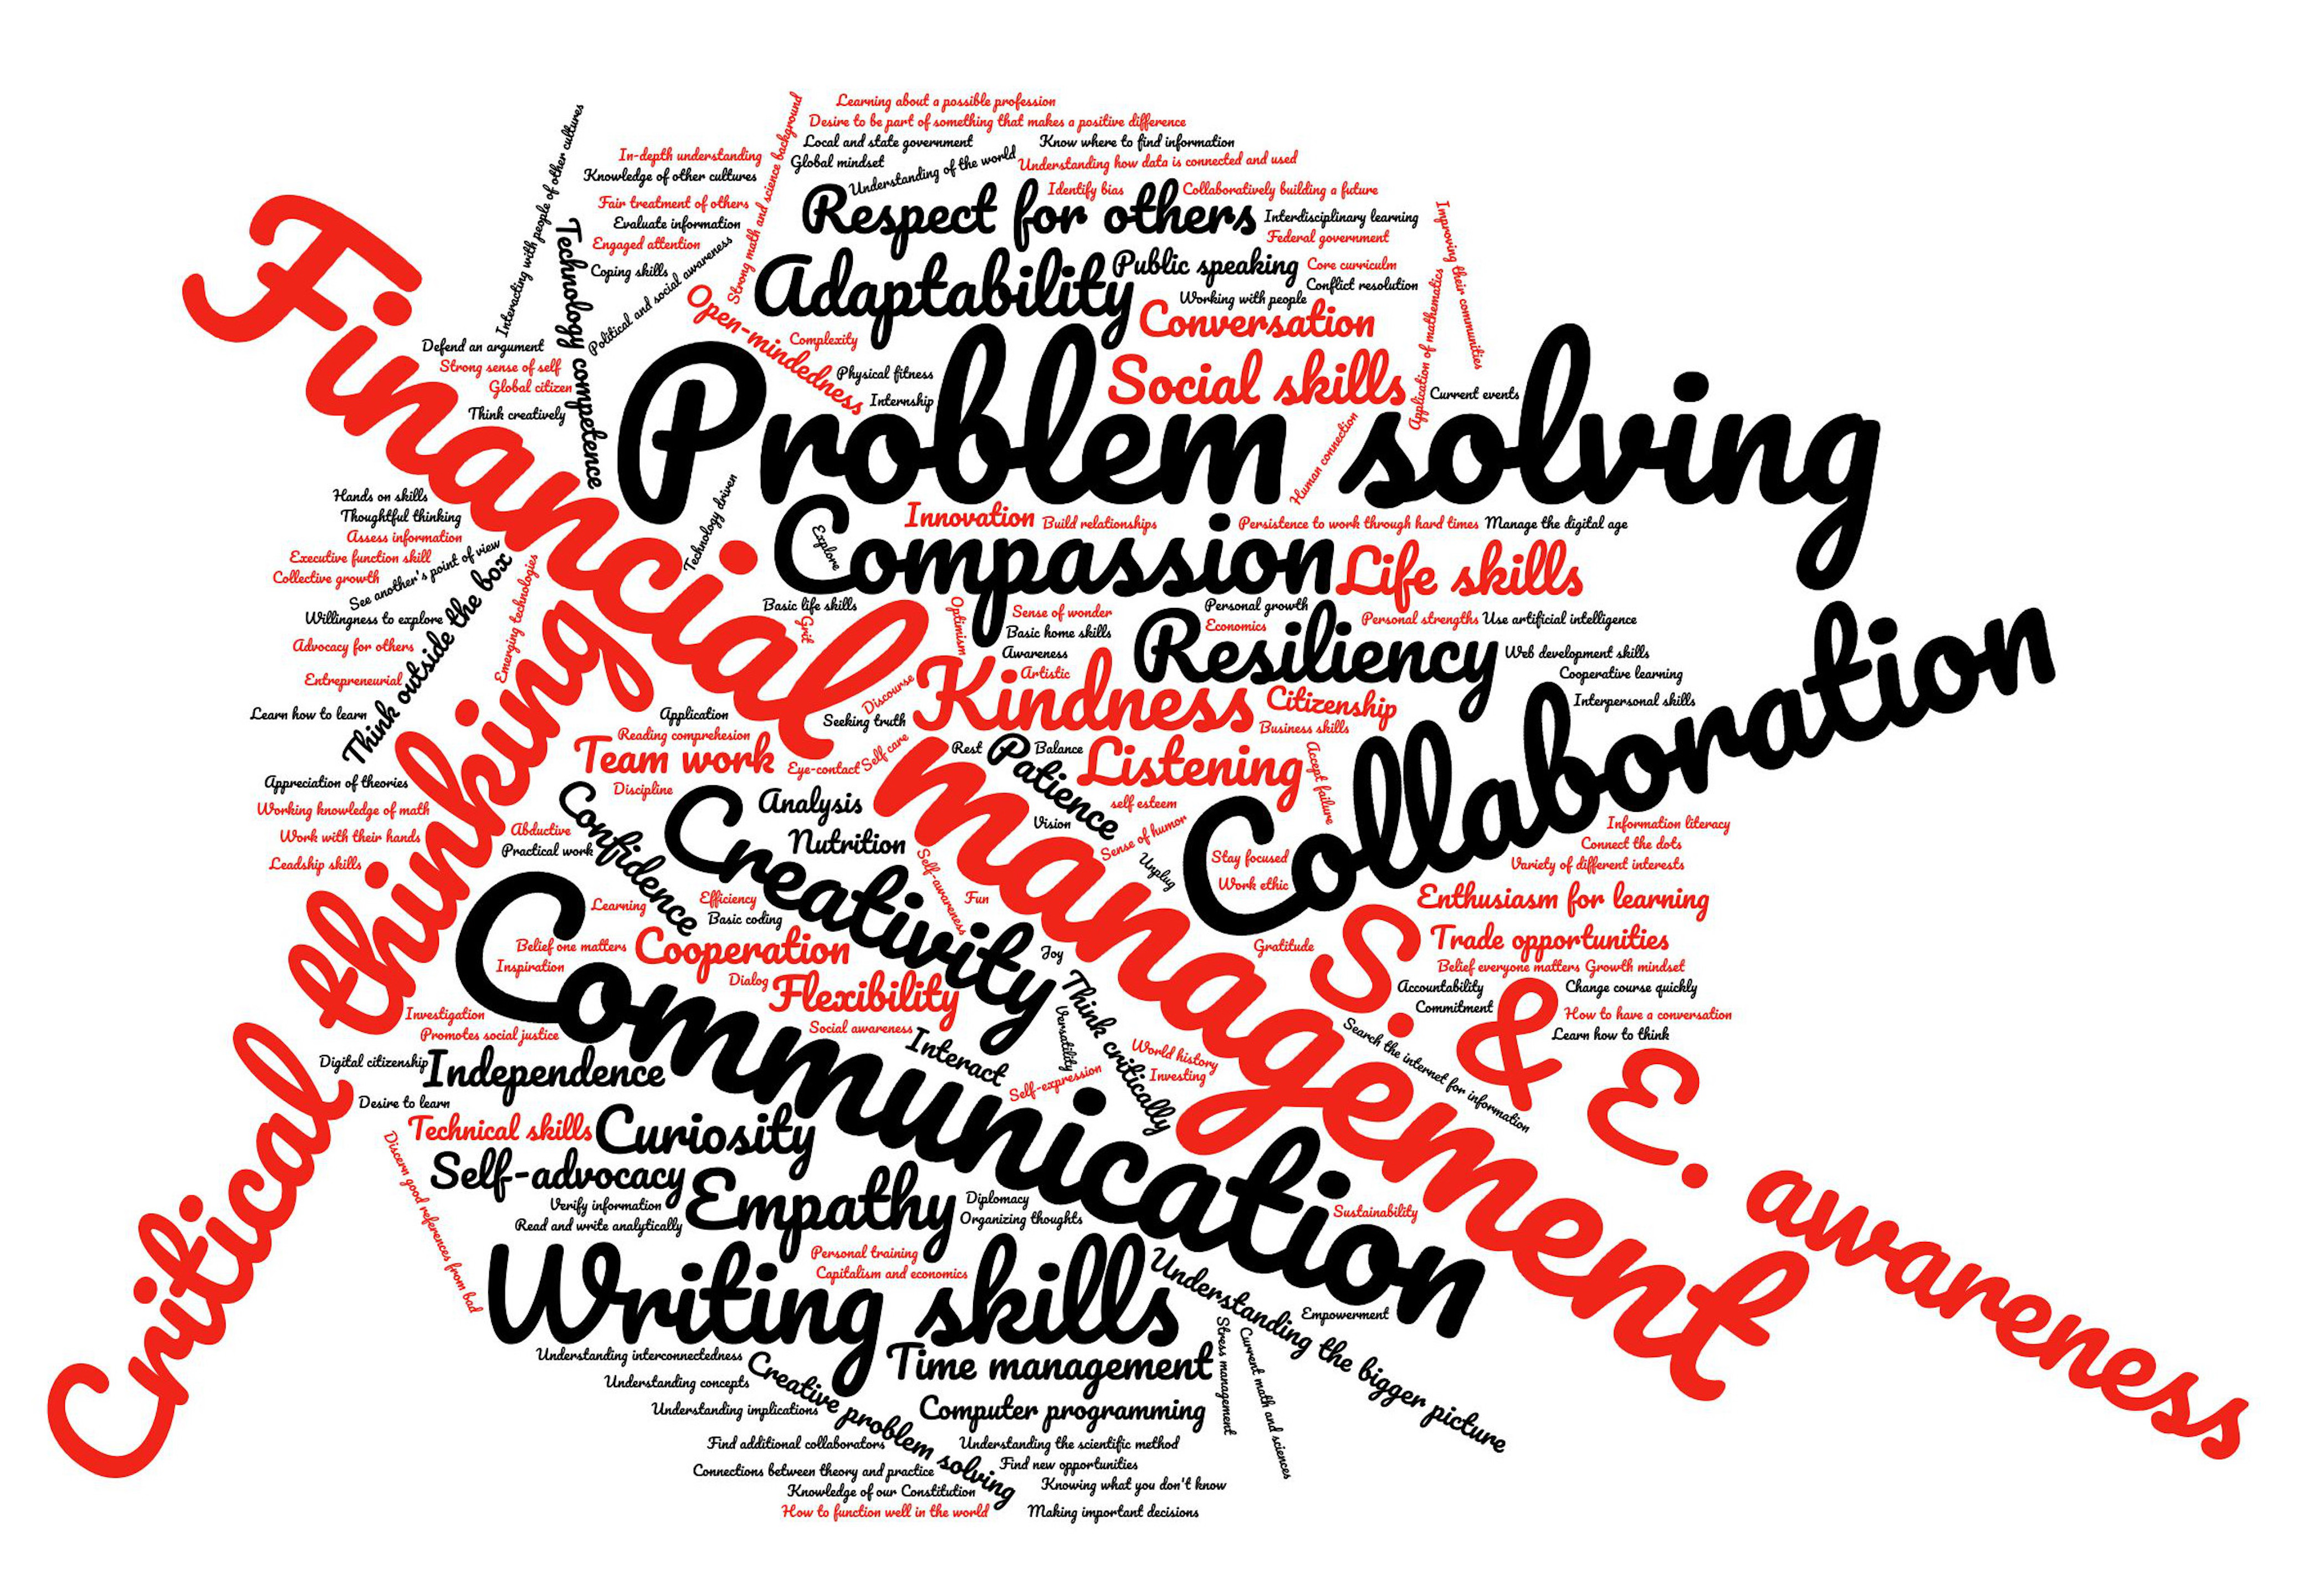 Word Cloud of Parent and Community Responses